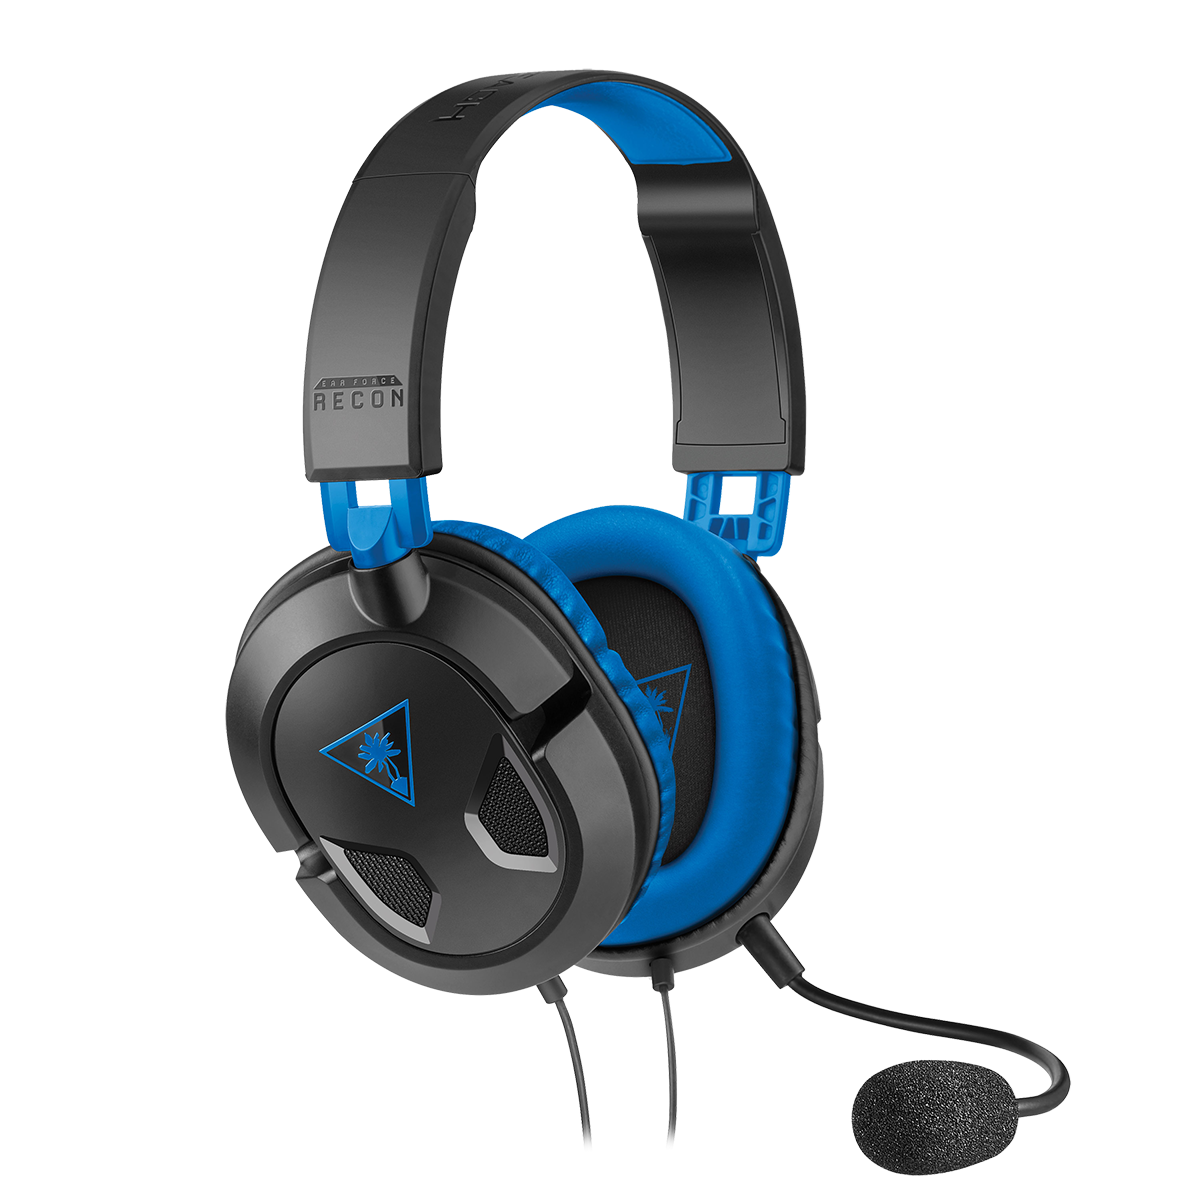 Recon 60P Gaming Headset.